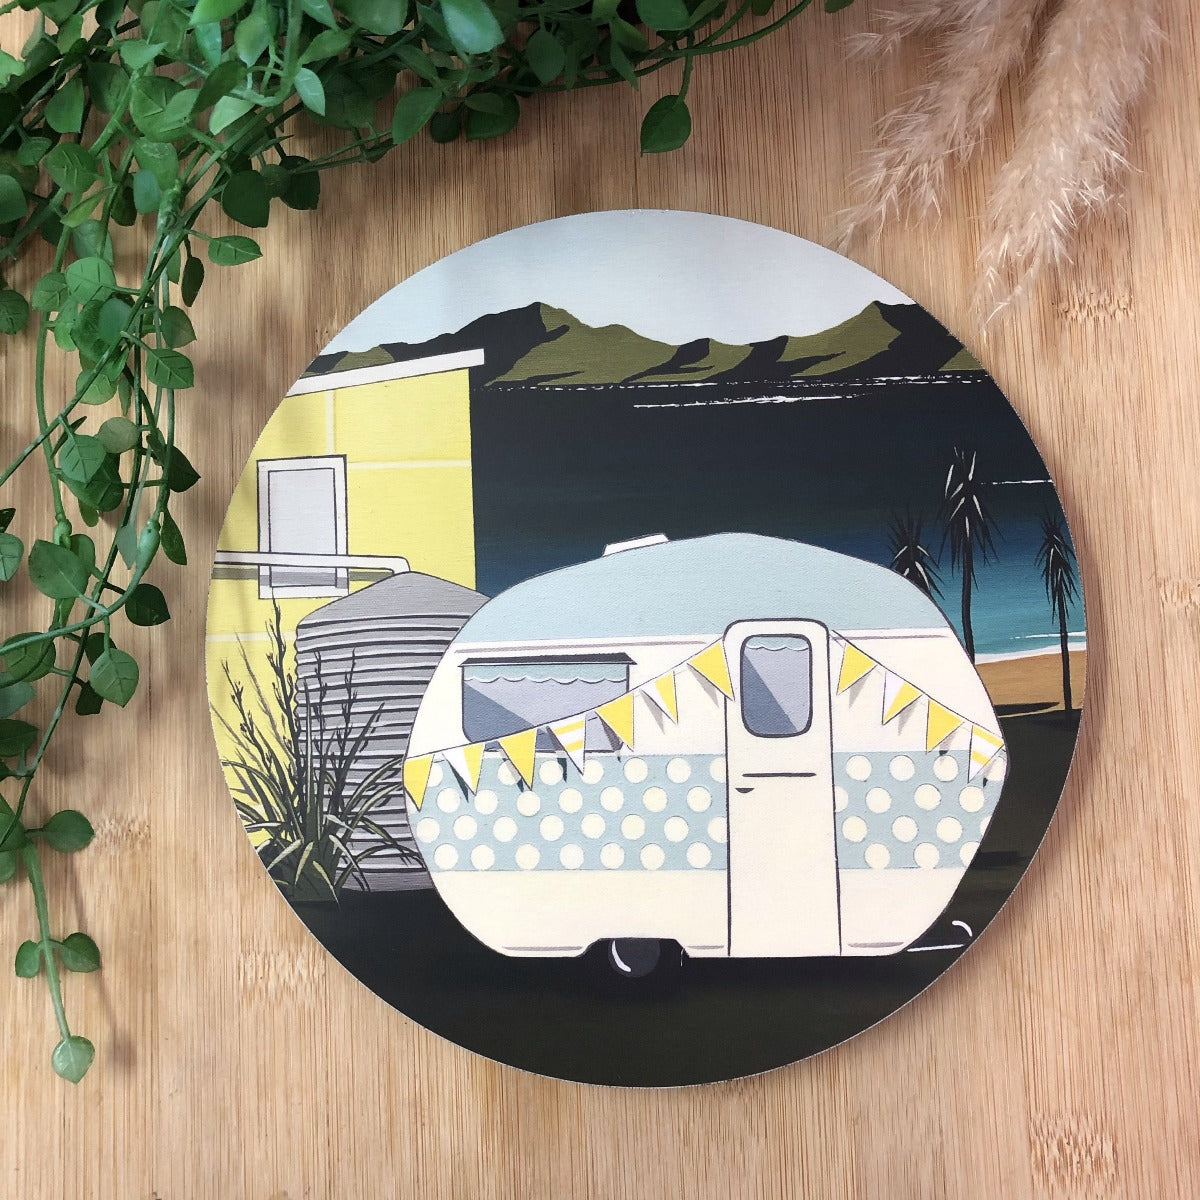 Kiwi Summer - Caravan Indoor/ Outdoor Wall Art